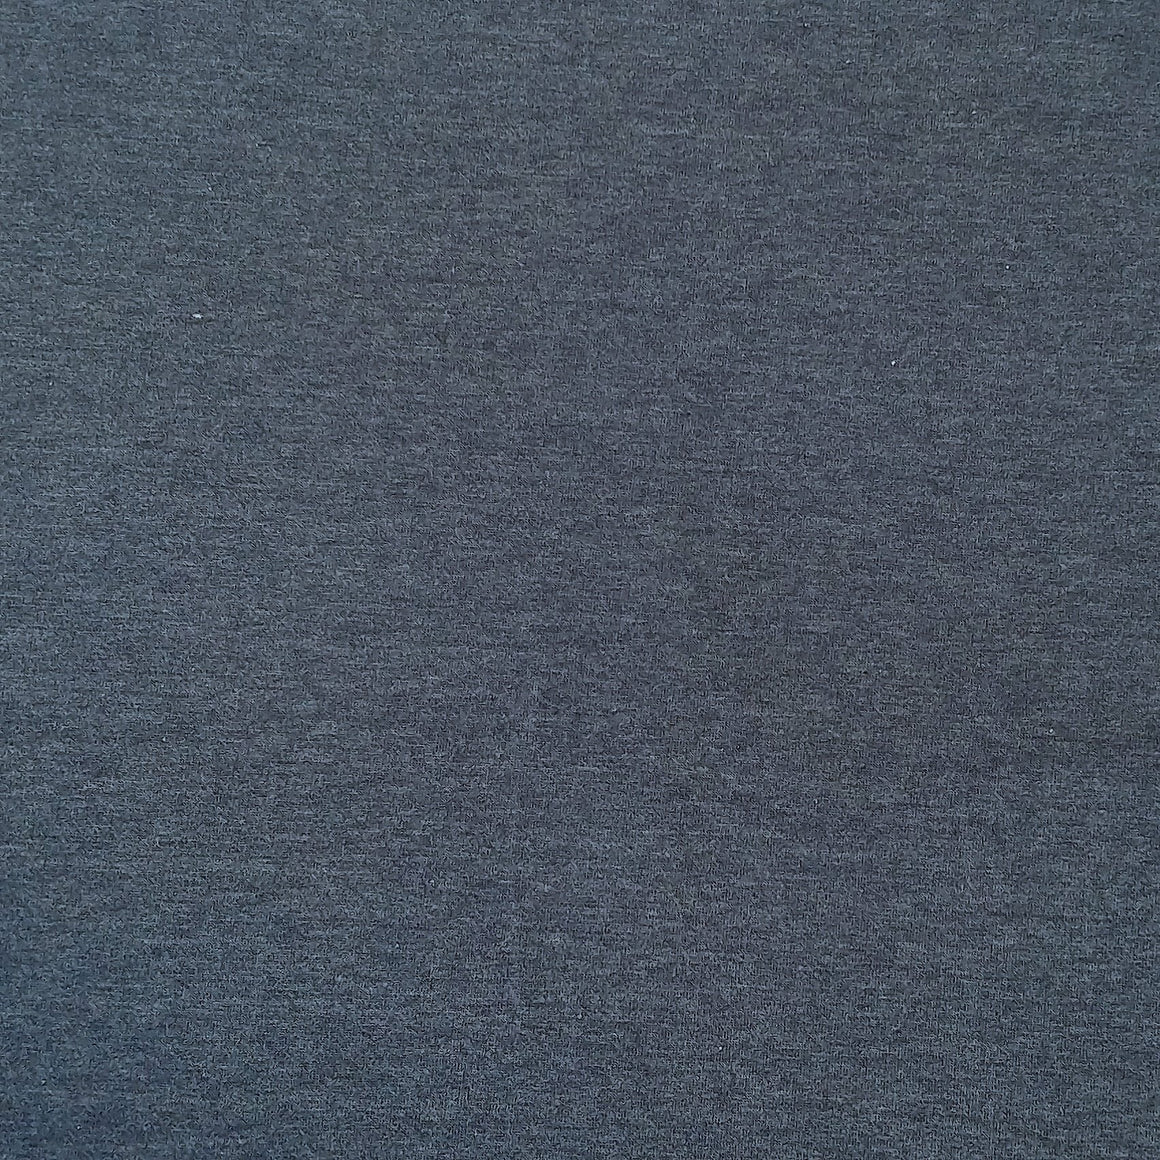 Heathered Dark Denim 4 Way Stretch 10 oz Cotton Lycra Jersey Knit Fabric, 1 Yard - Raspberry Creek Fabrics